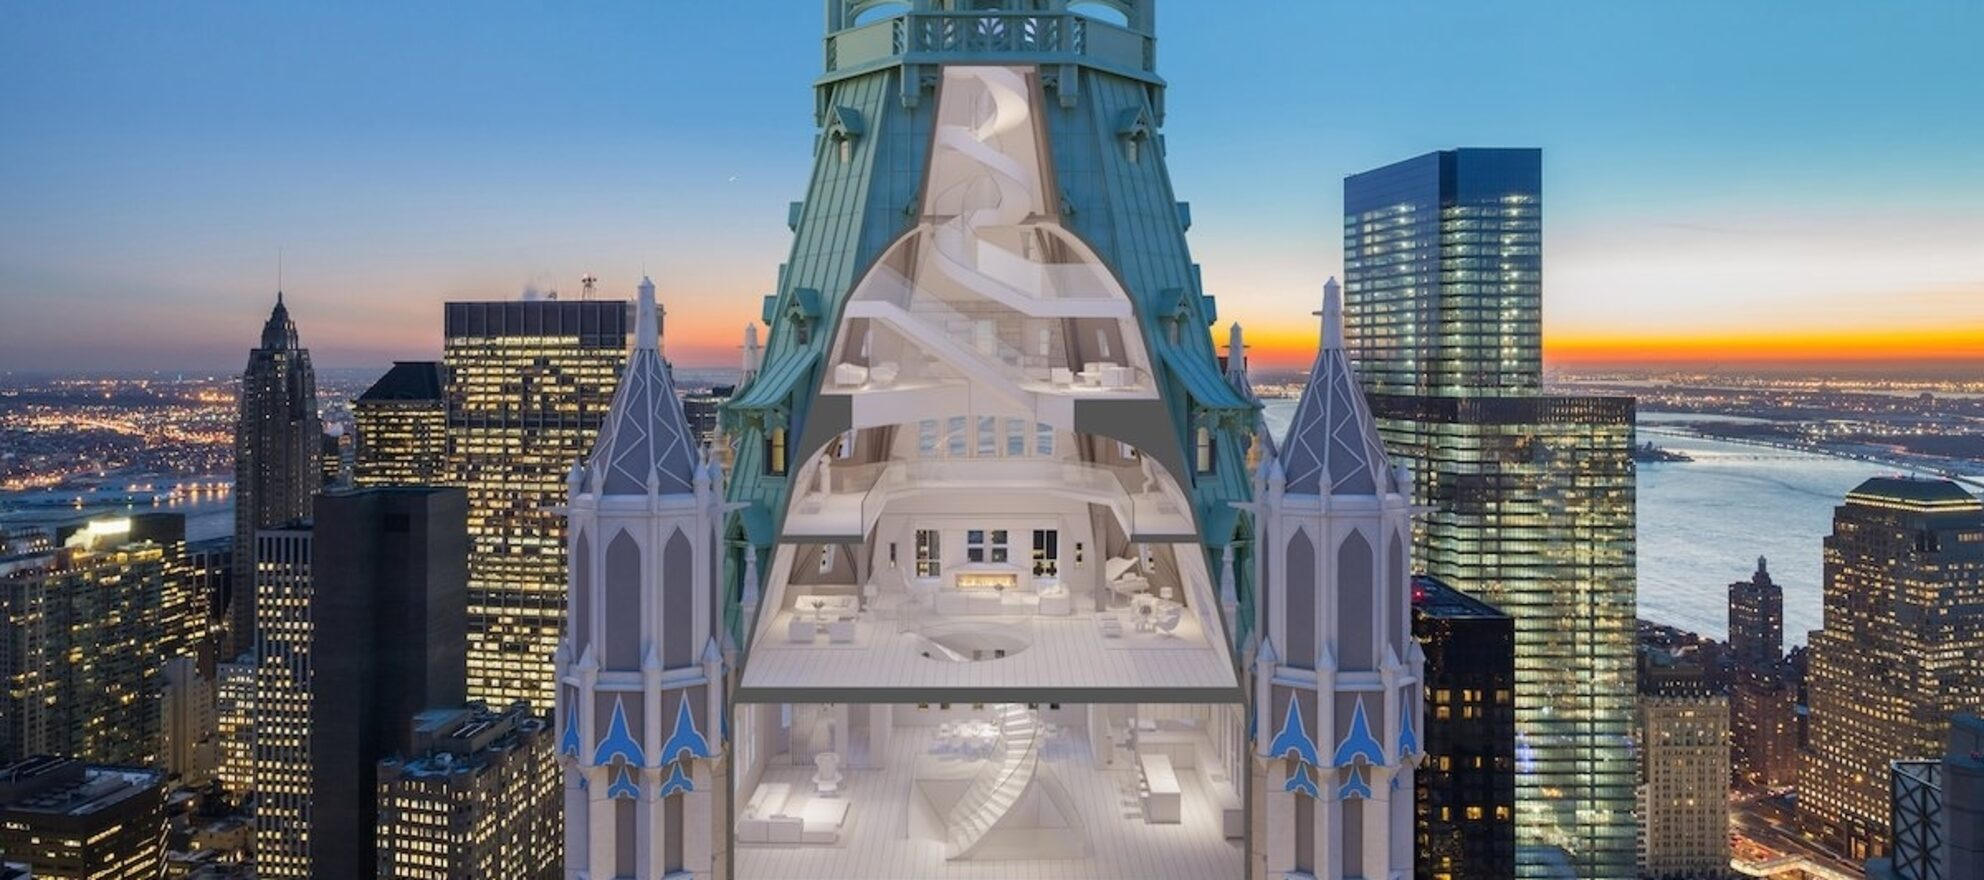 Woolworth penthouse for sale. Ordinary minds need not apply